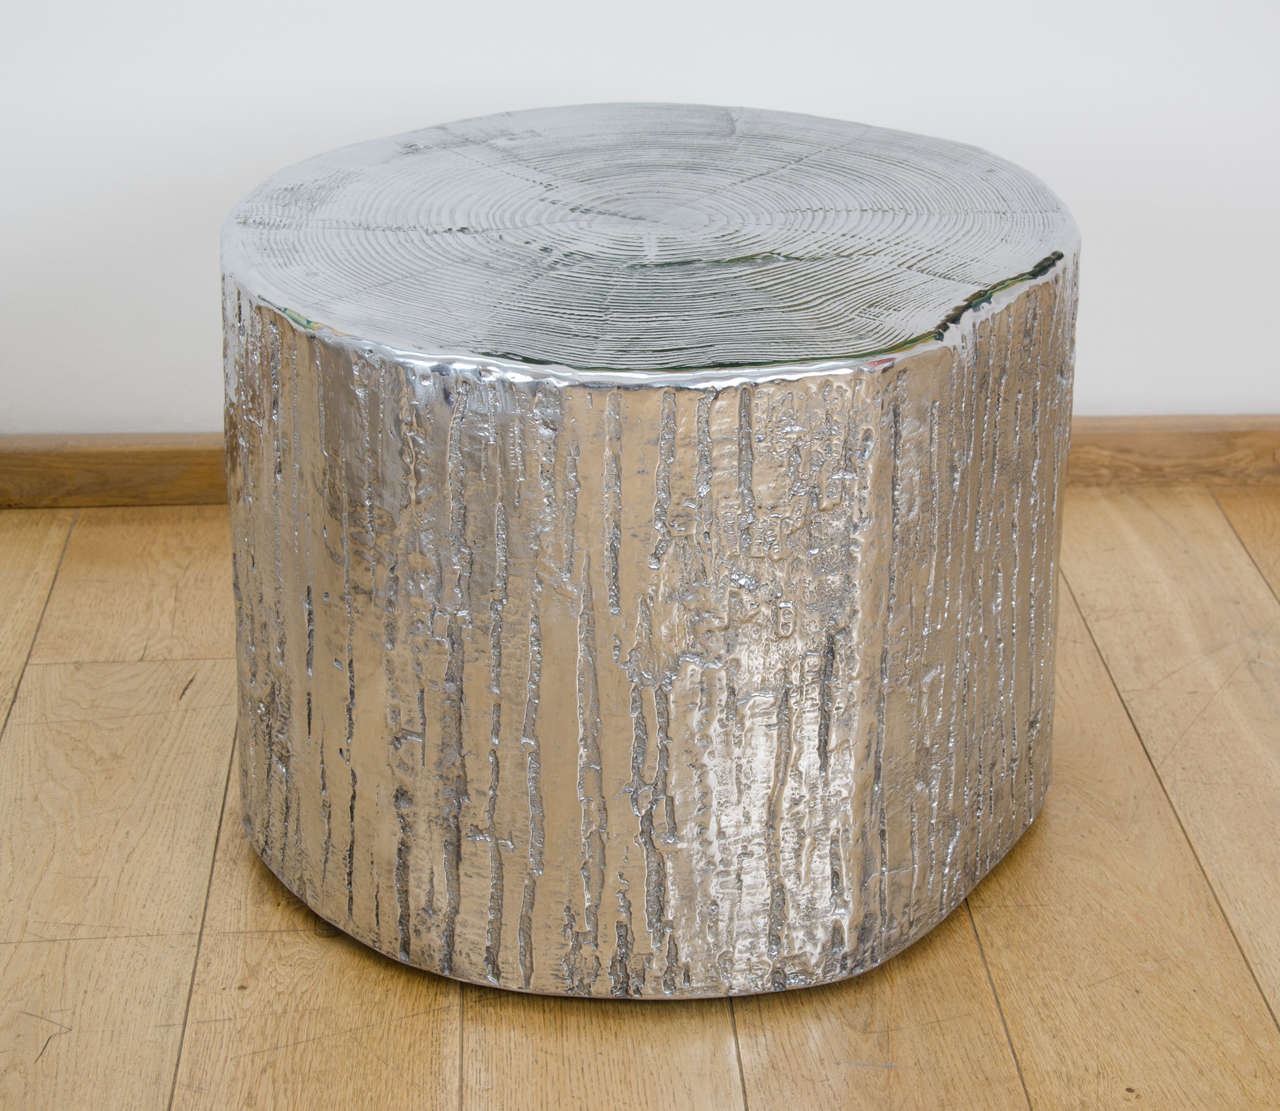 By Andrea Salvetti, contemporary